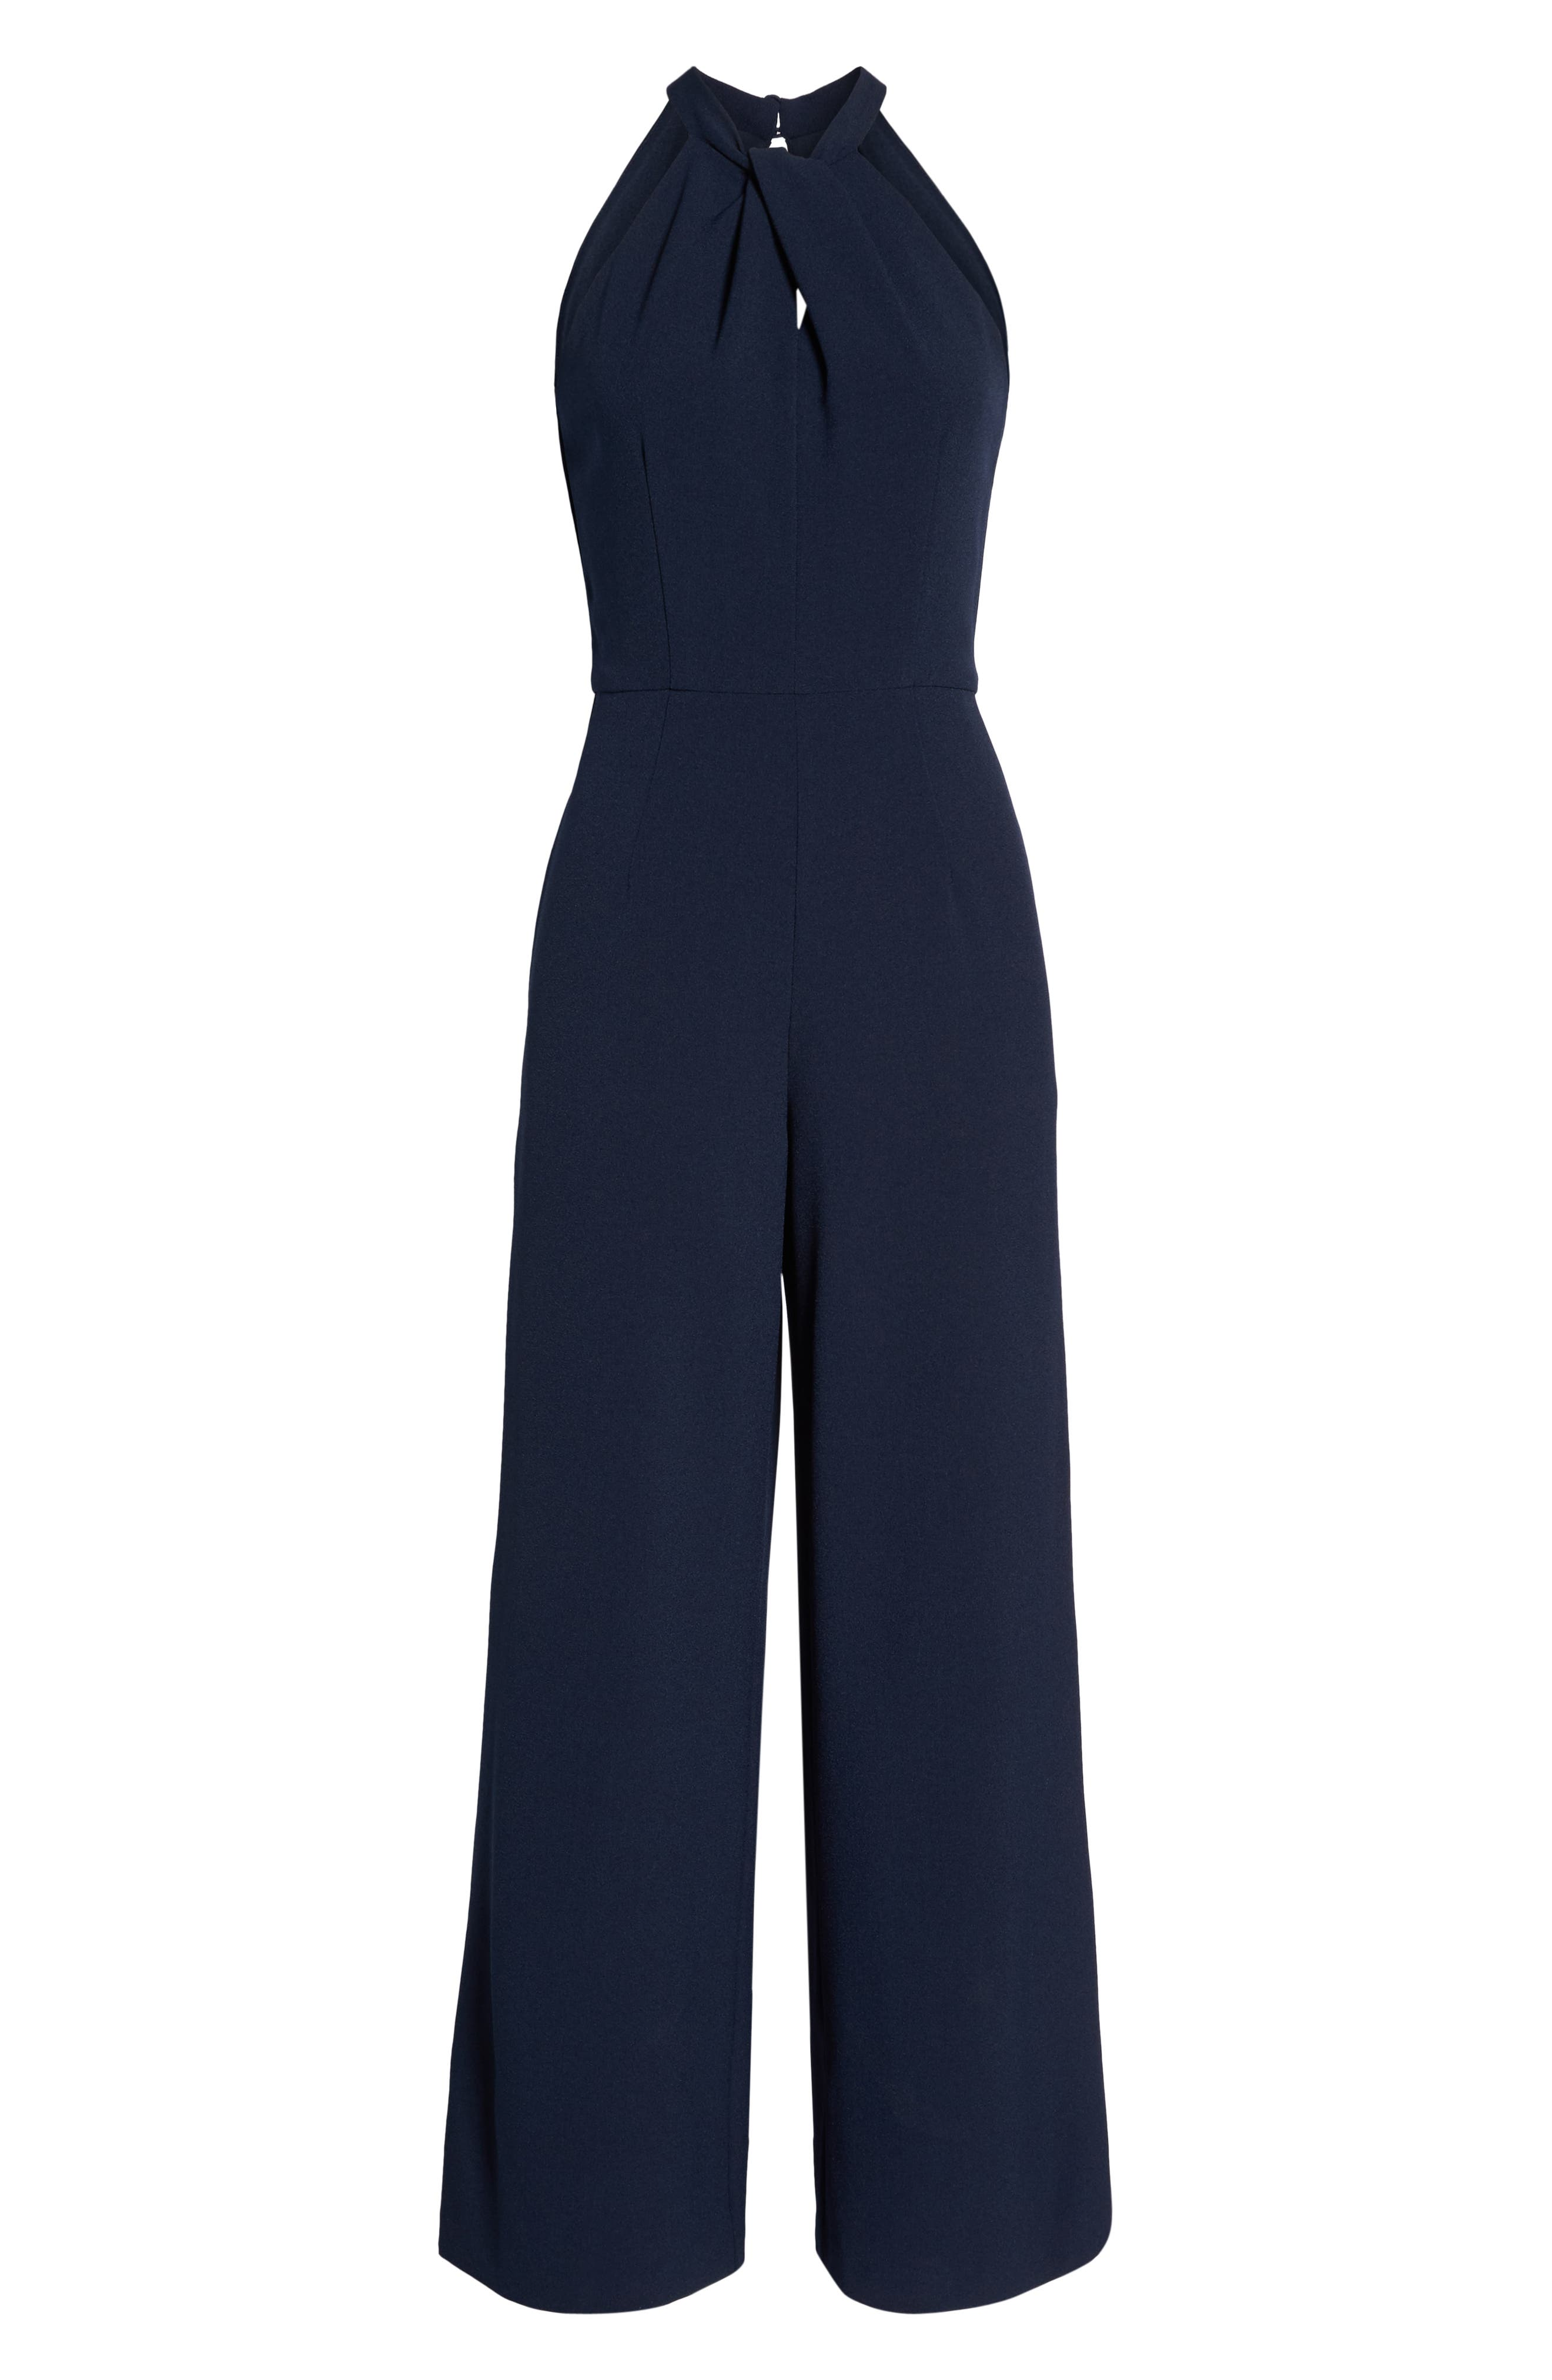 JULIA JORDAN, Halter Wide Leg Jumpsuit, Alternate thumbnail 7, color, NAVY